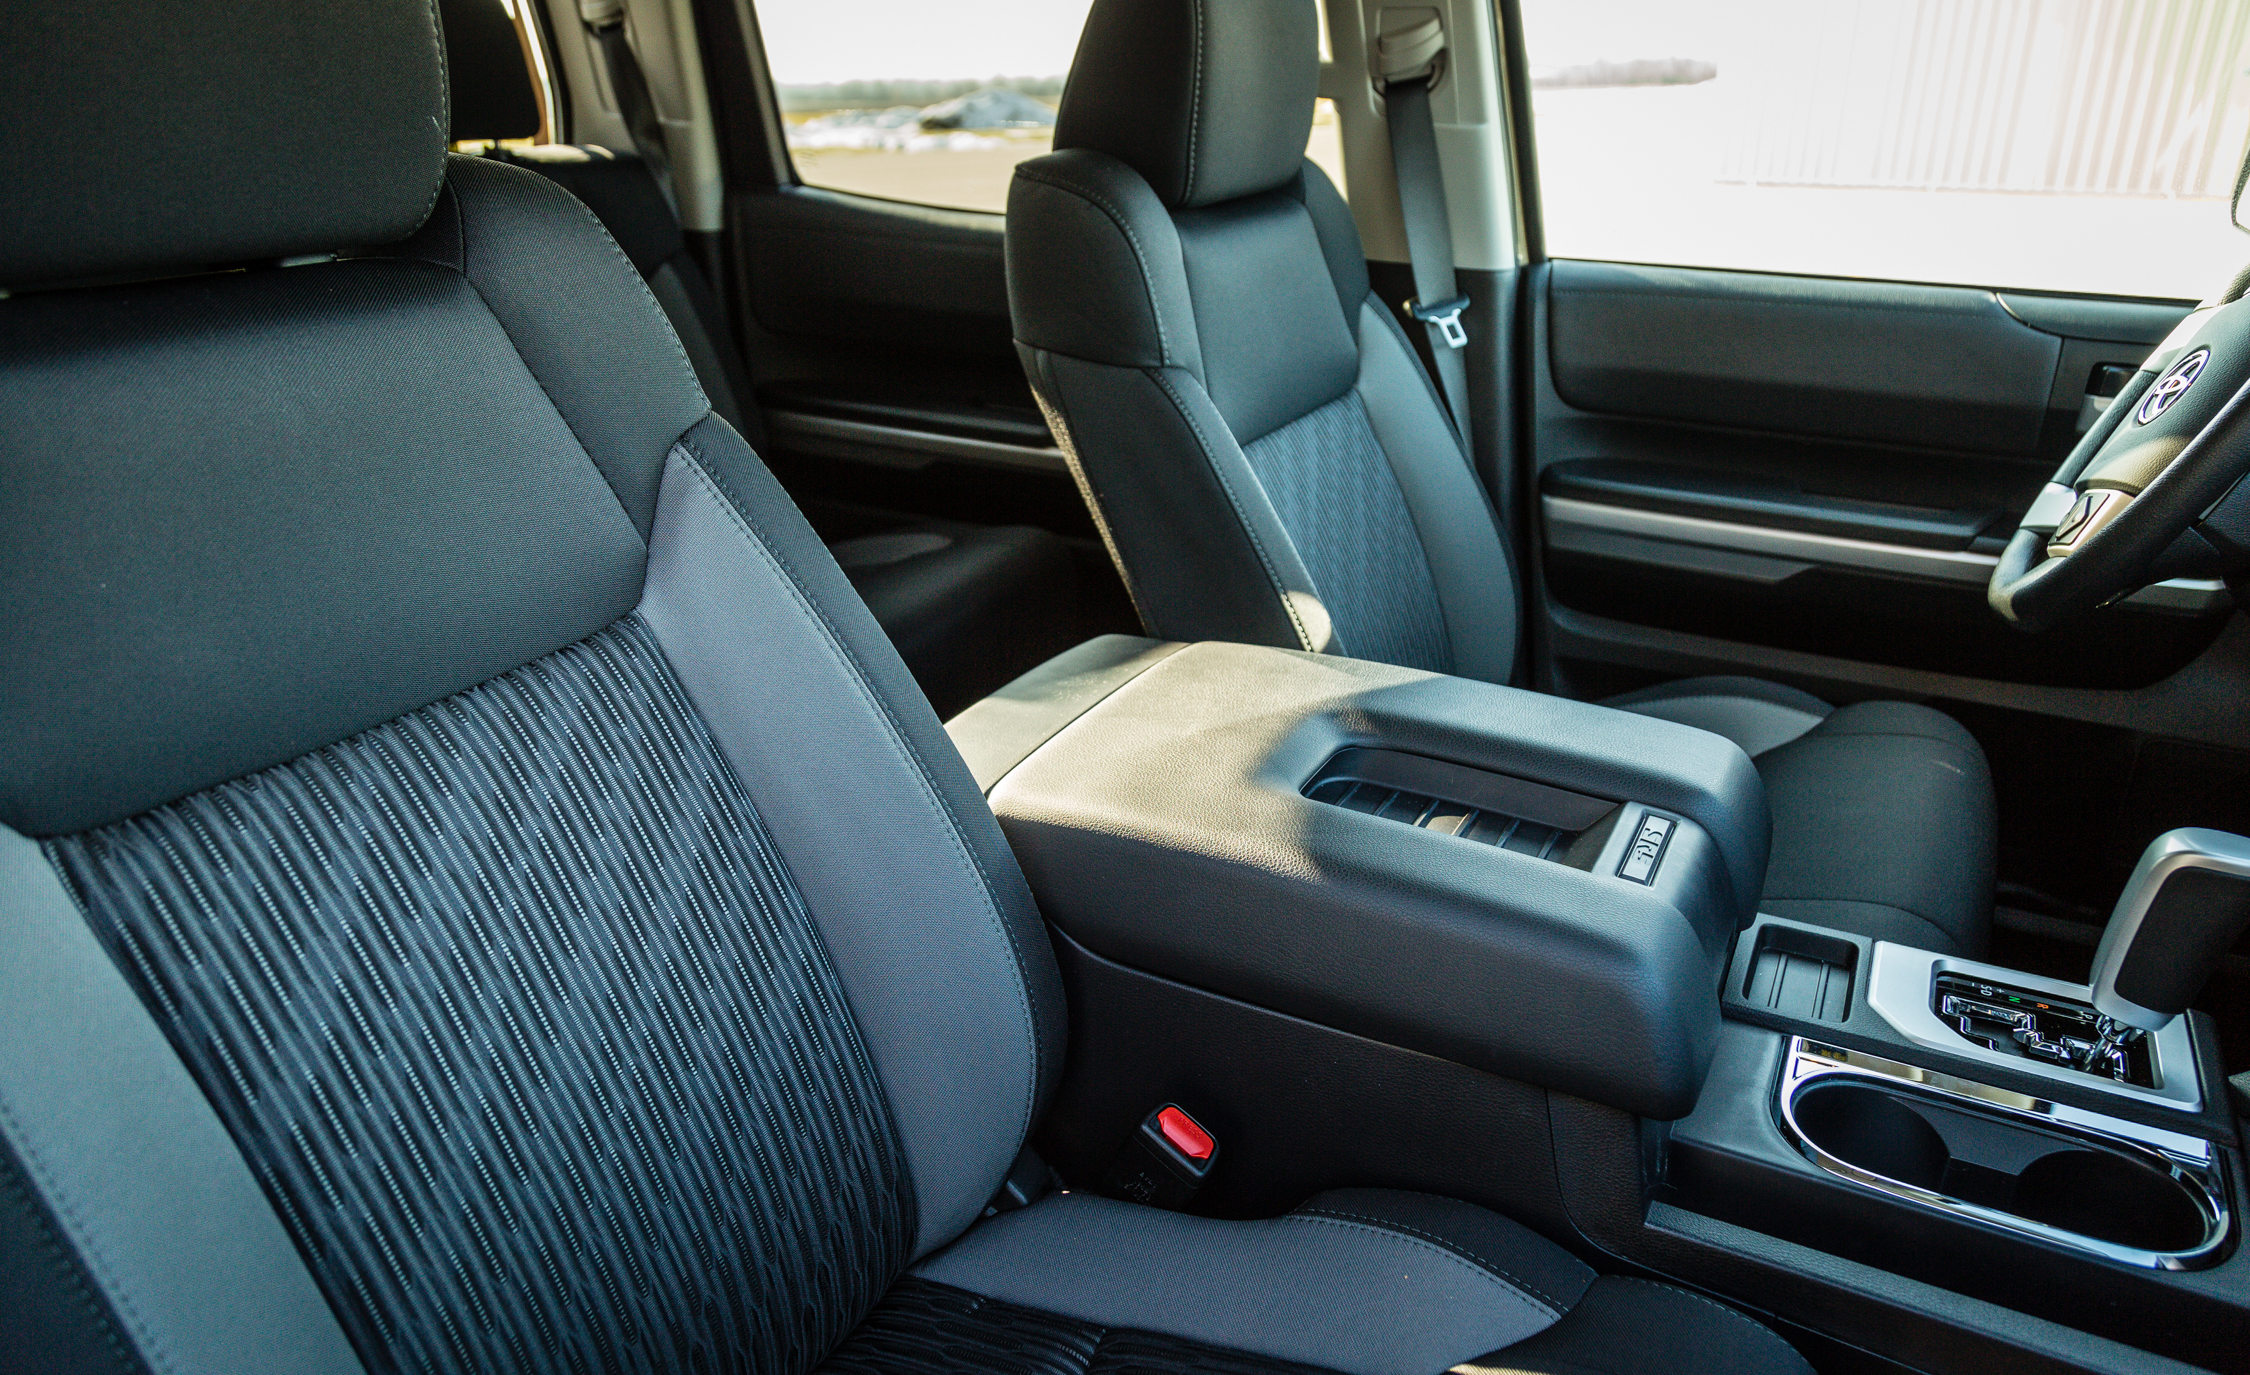 2017 Toyota Tundra Interior Seats Front (View 14 of 24)